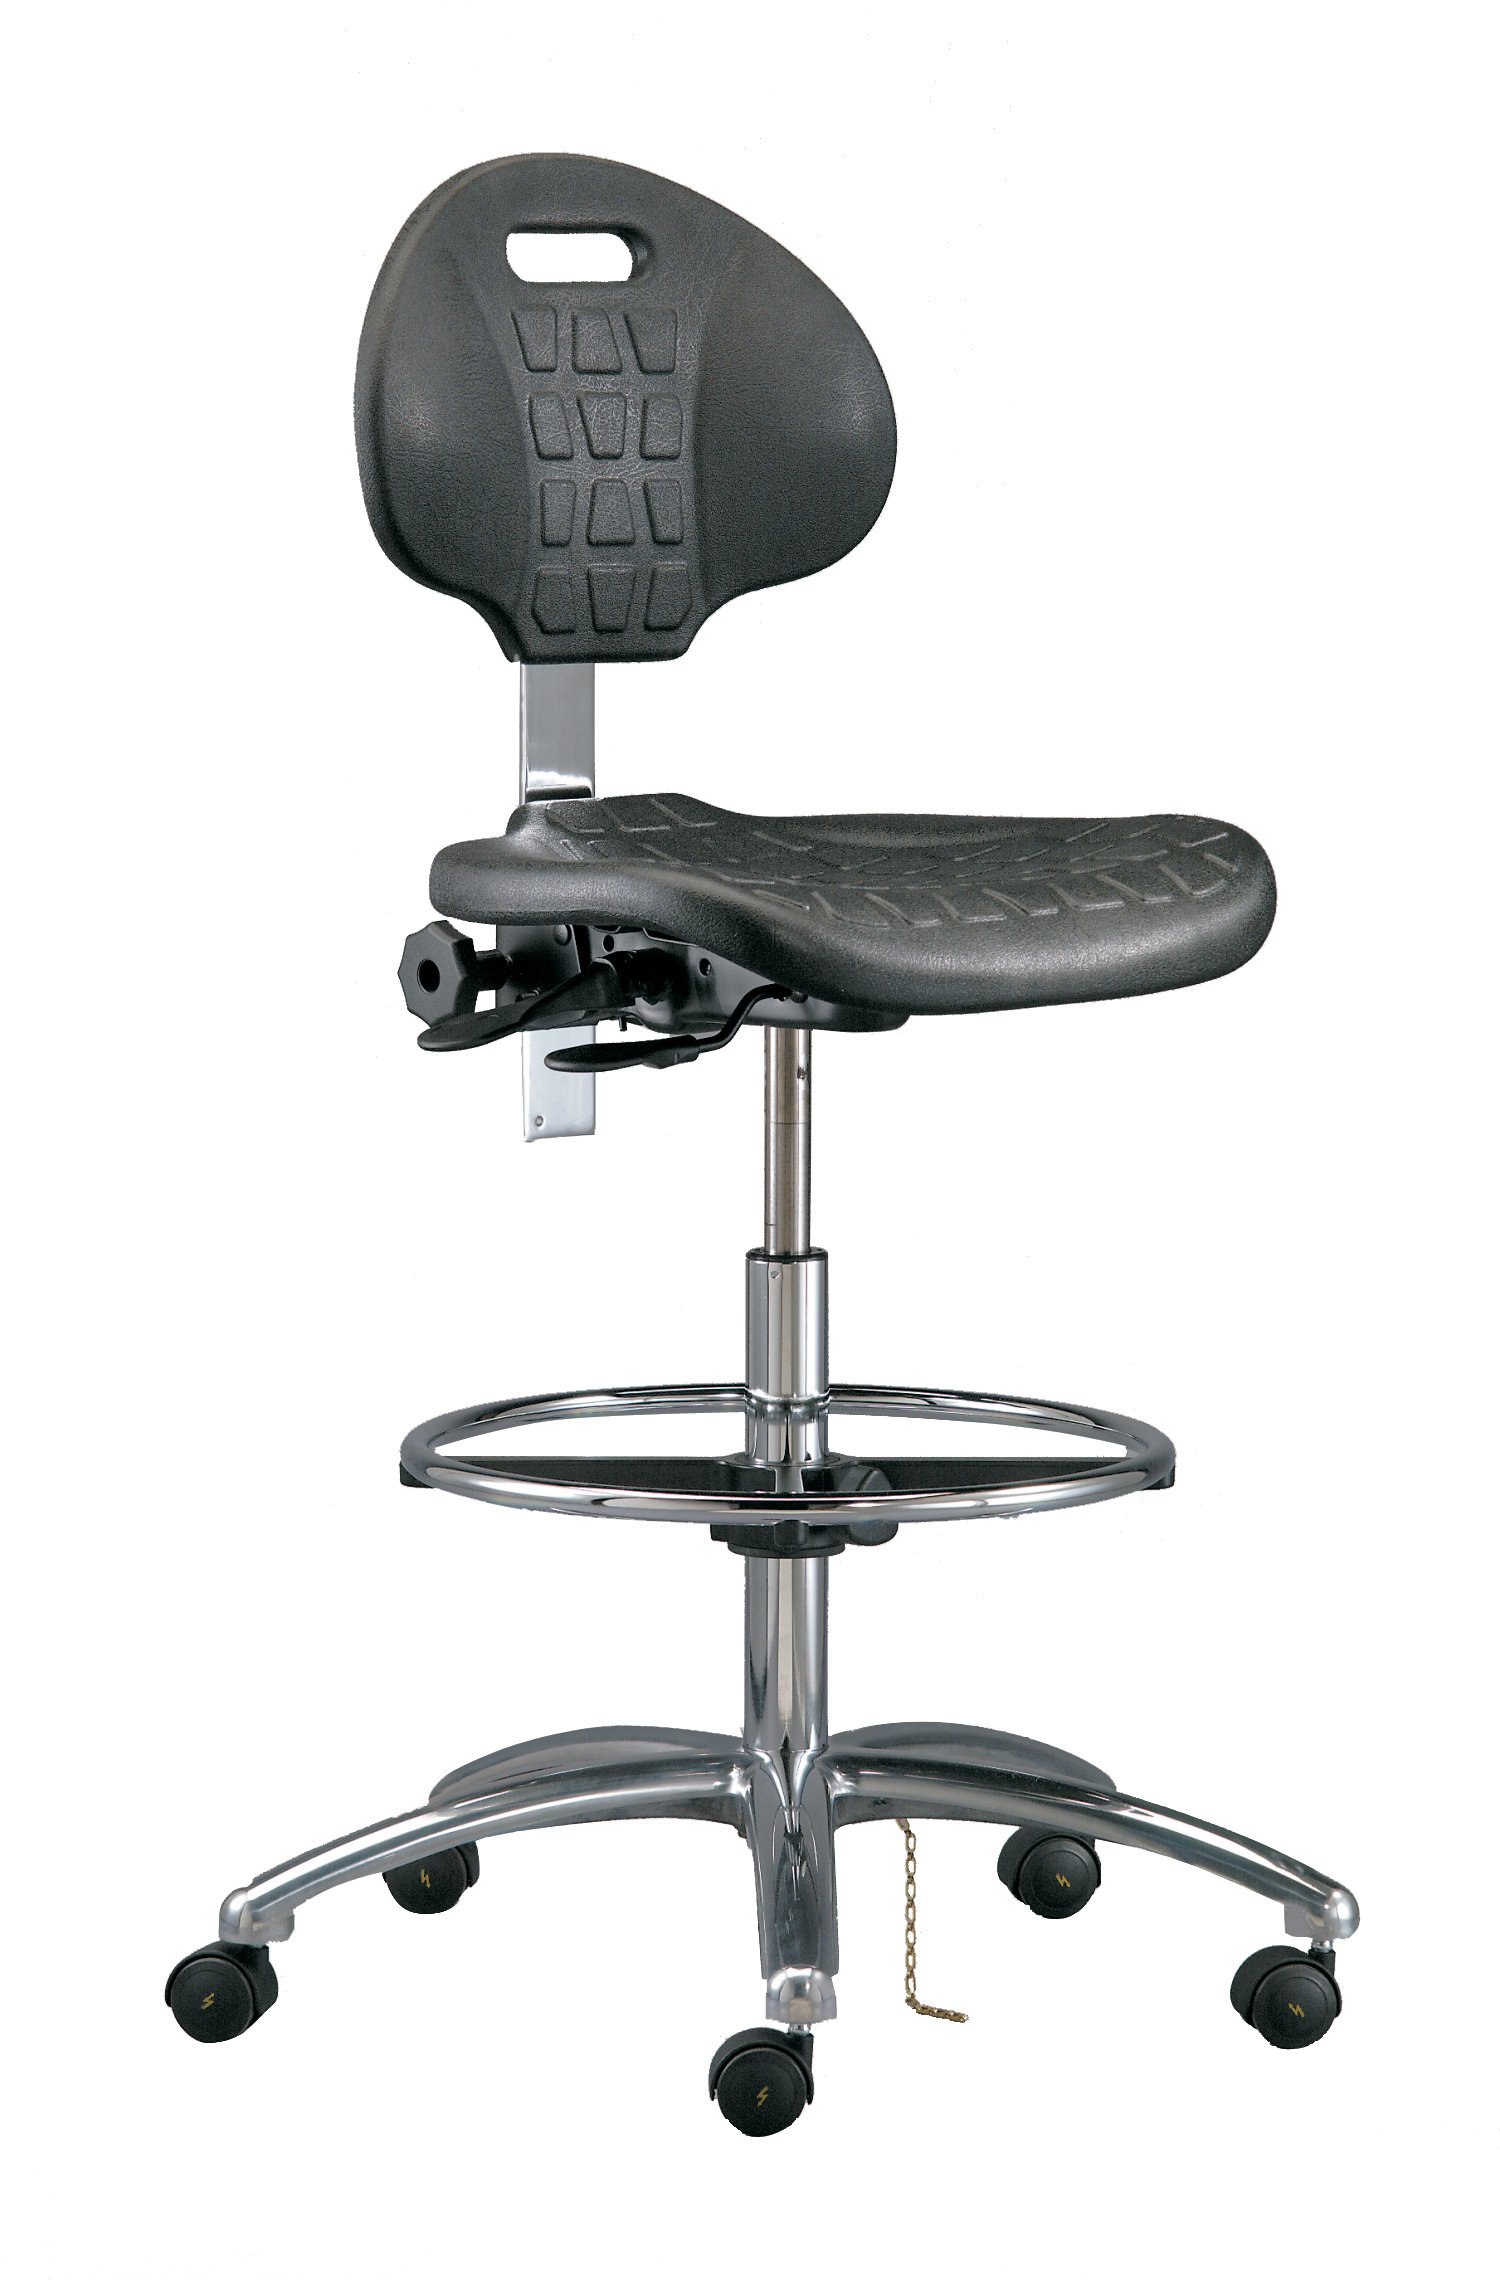 Bevco 7550E Class 10 Certified Cleanroom Ergonomic ESD Chair, 18'' Dia. Adjustable Chrome Footring, Polished Aluminum Base, 20-1/2''to 30-1/2'' Height Adjustment